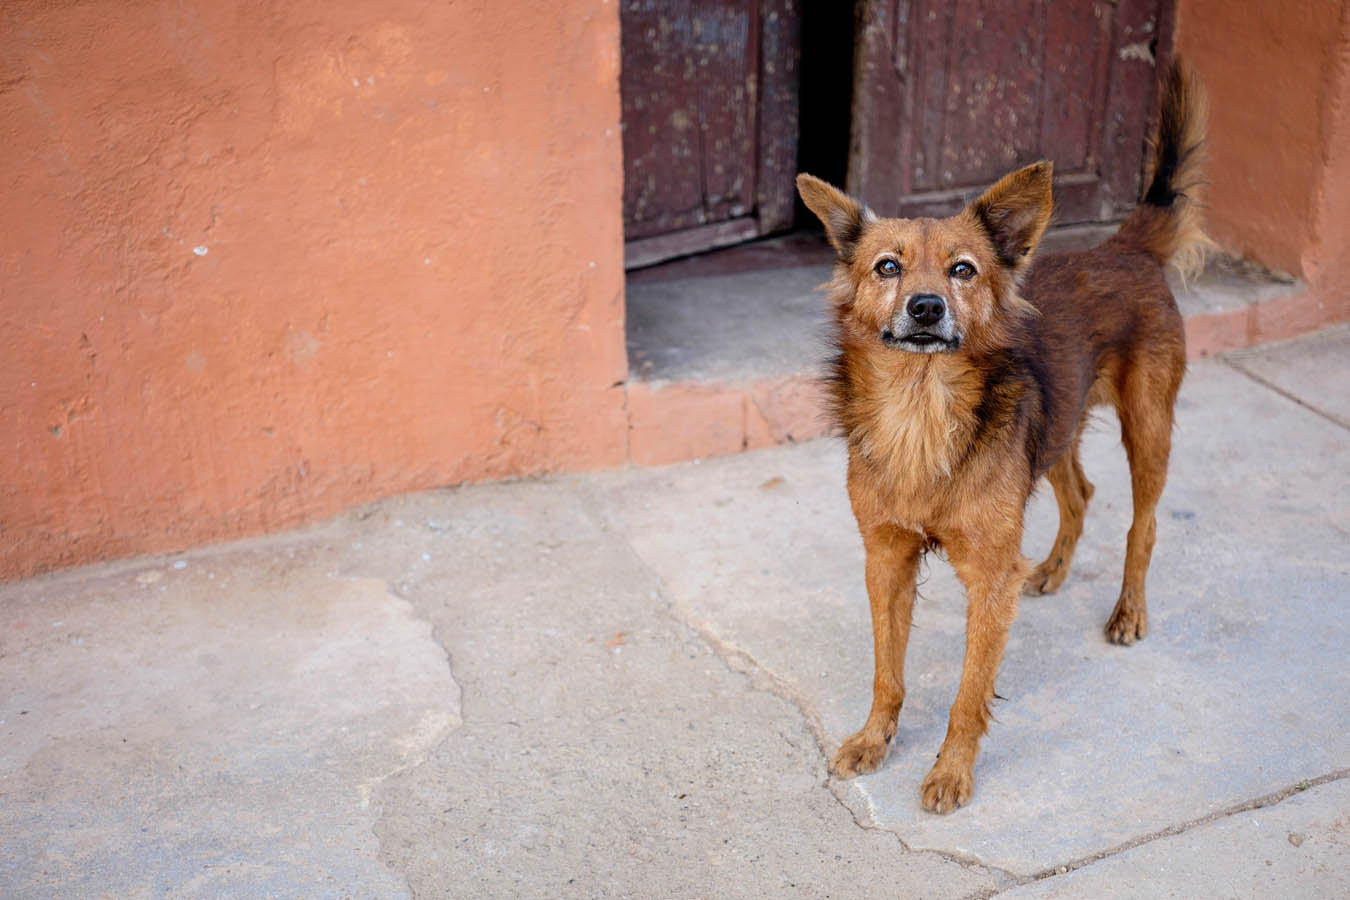 Dogs-of-Cuba-Sharon-Blance-Melbourne-photographer-PWS011-1473